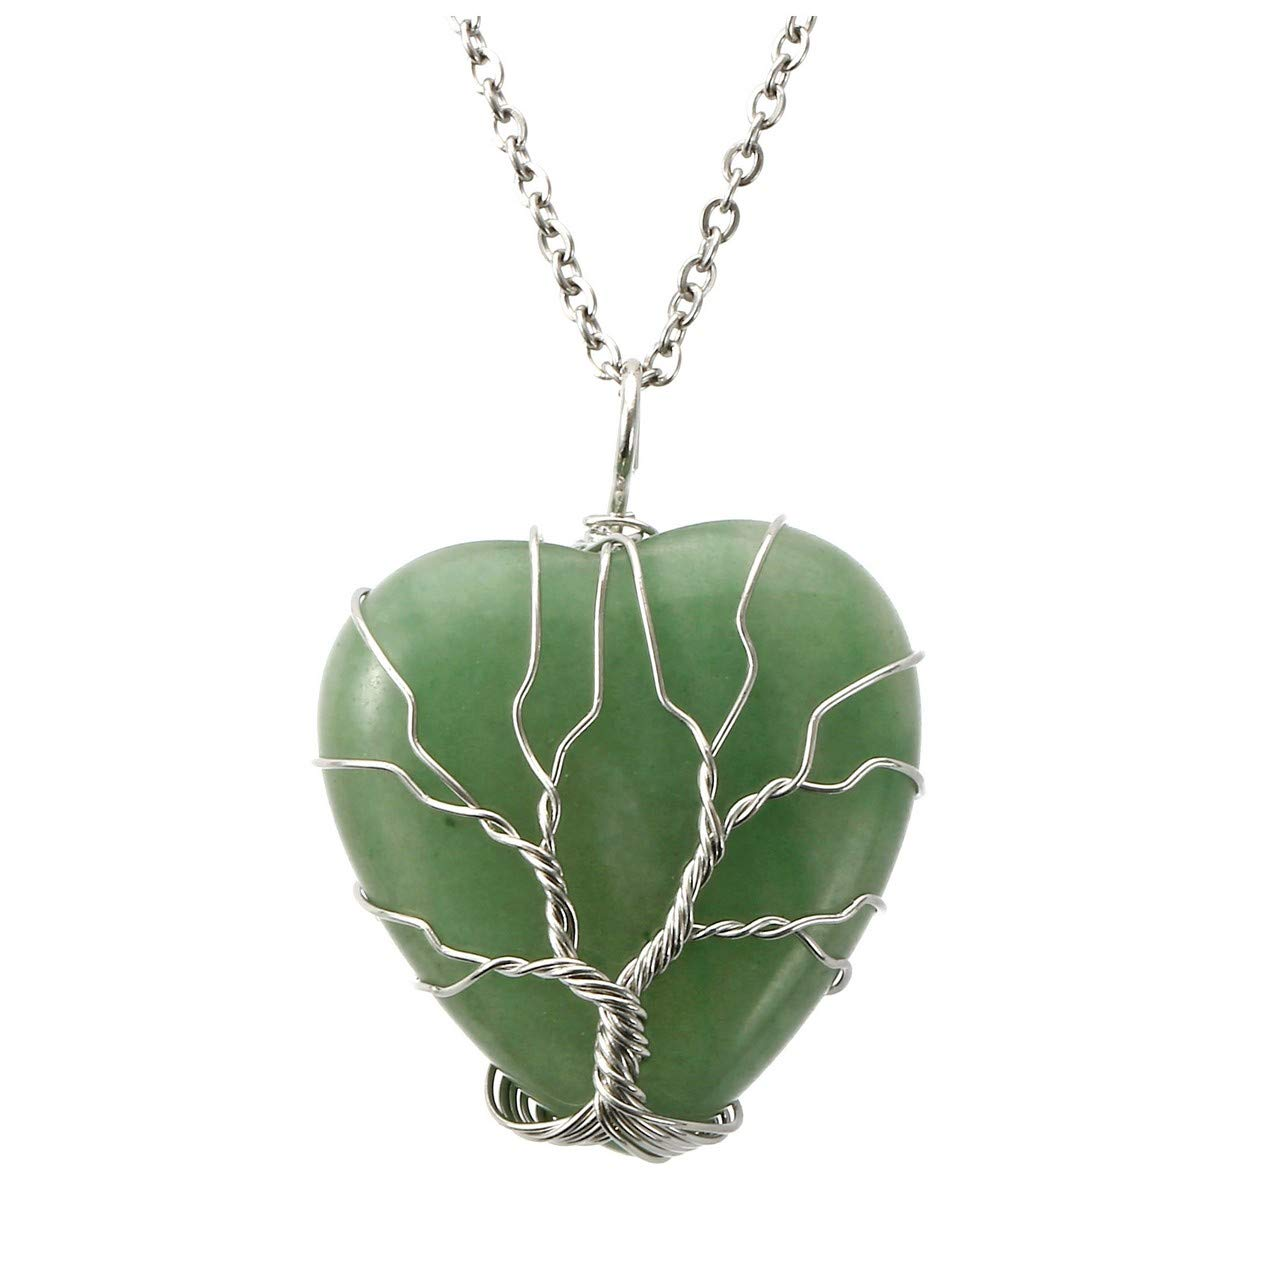 Top Plaza Natural Green Aventurine Healing Crystals Necklace Silver Tree of Life Wire Wrapped Heart Shape Stone Pendant for Womens Girls Ladies